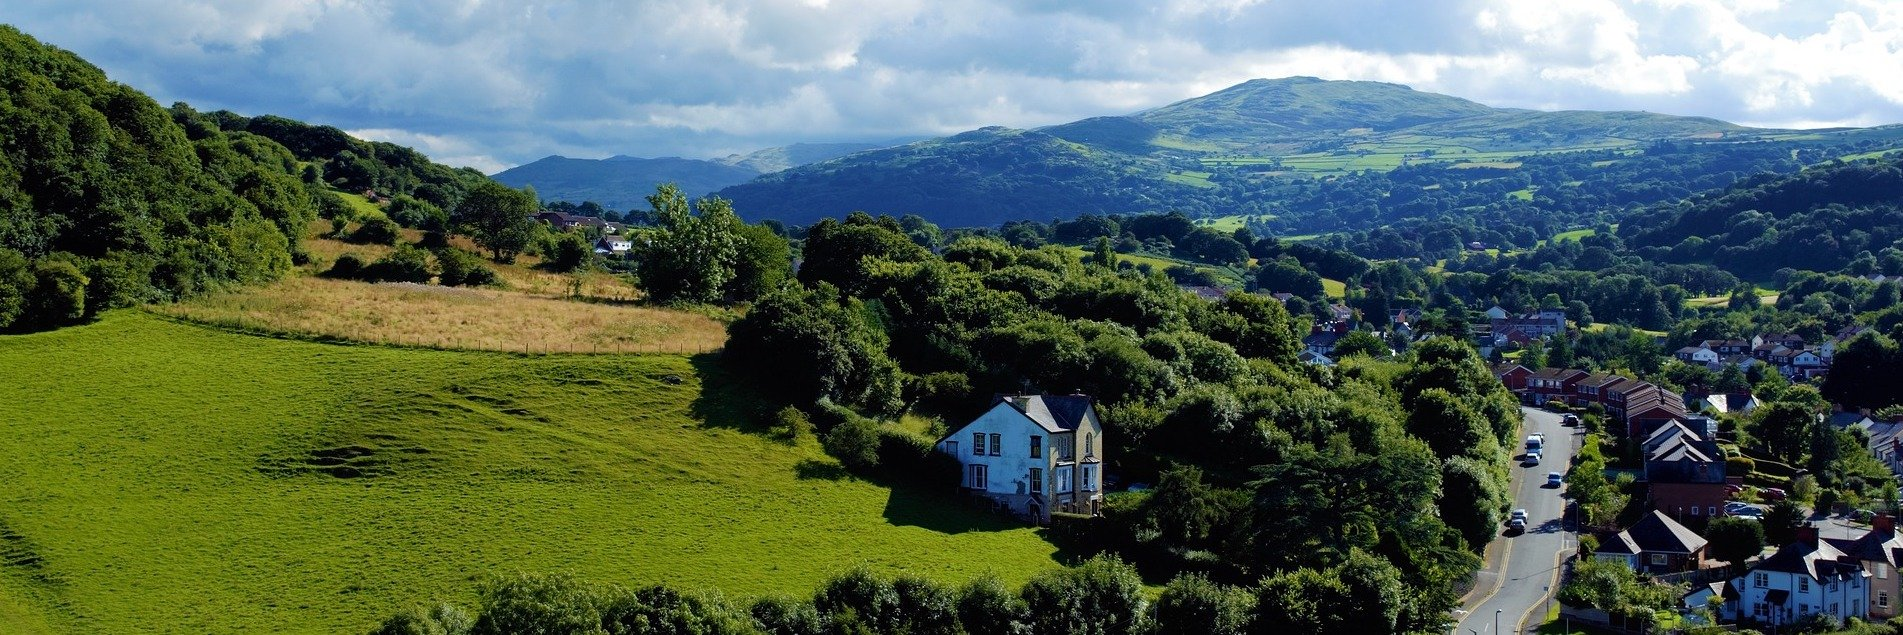 Luxury Cottages in Mid Wales